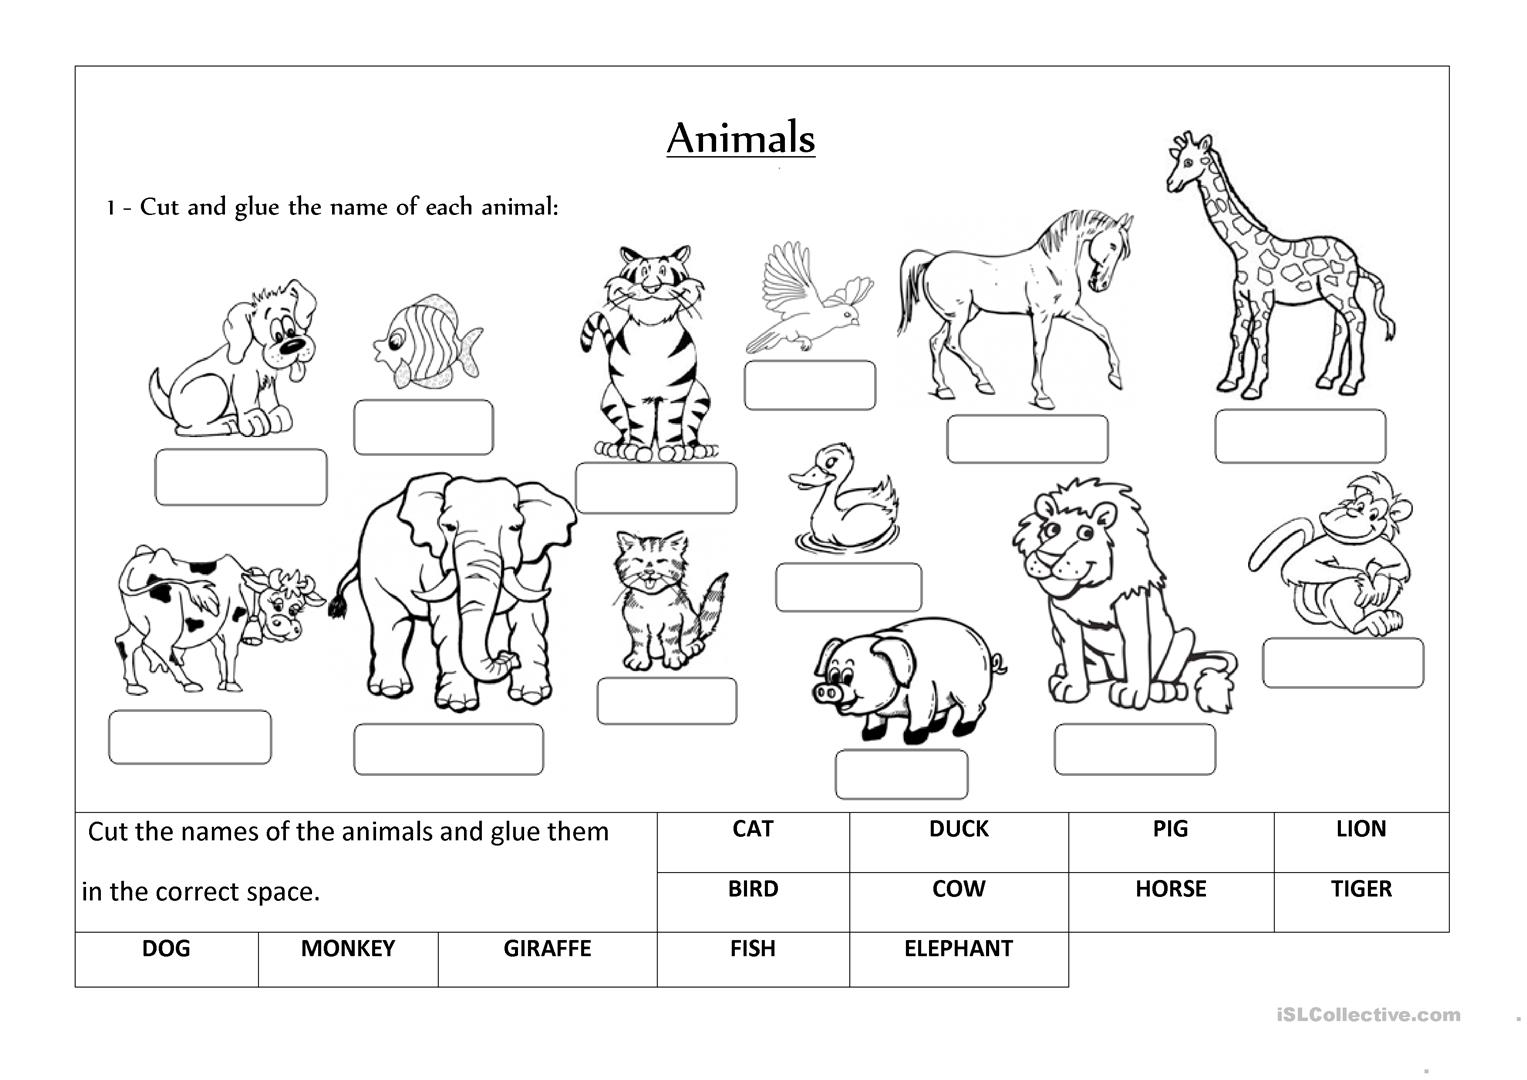 animals label and classify worksheet free esl printable worksheets made by teachers. Black Bedroom Furniture Sets. Home Design Ideas